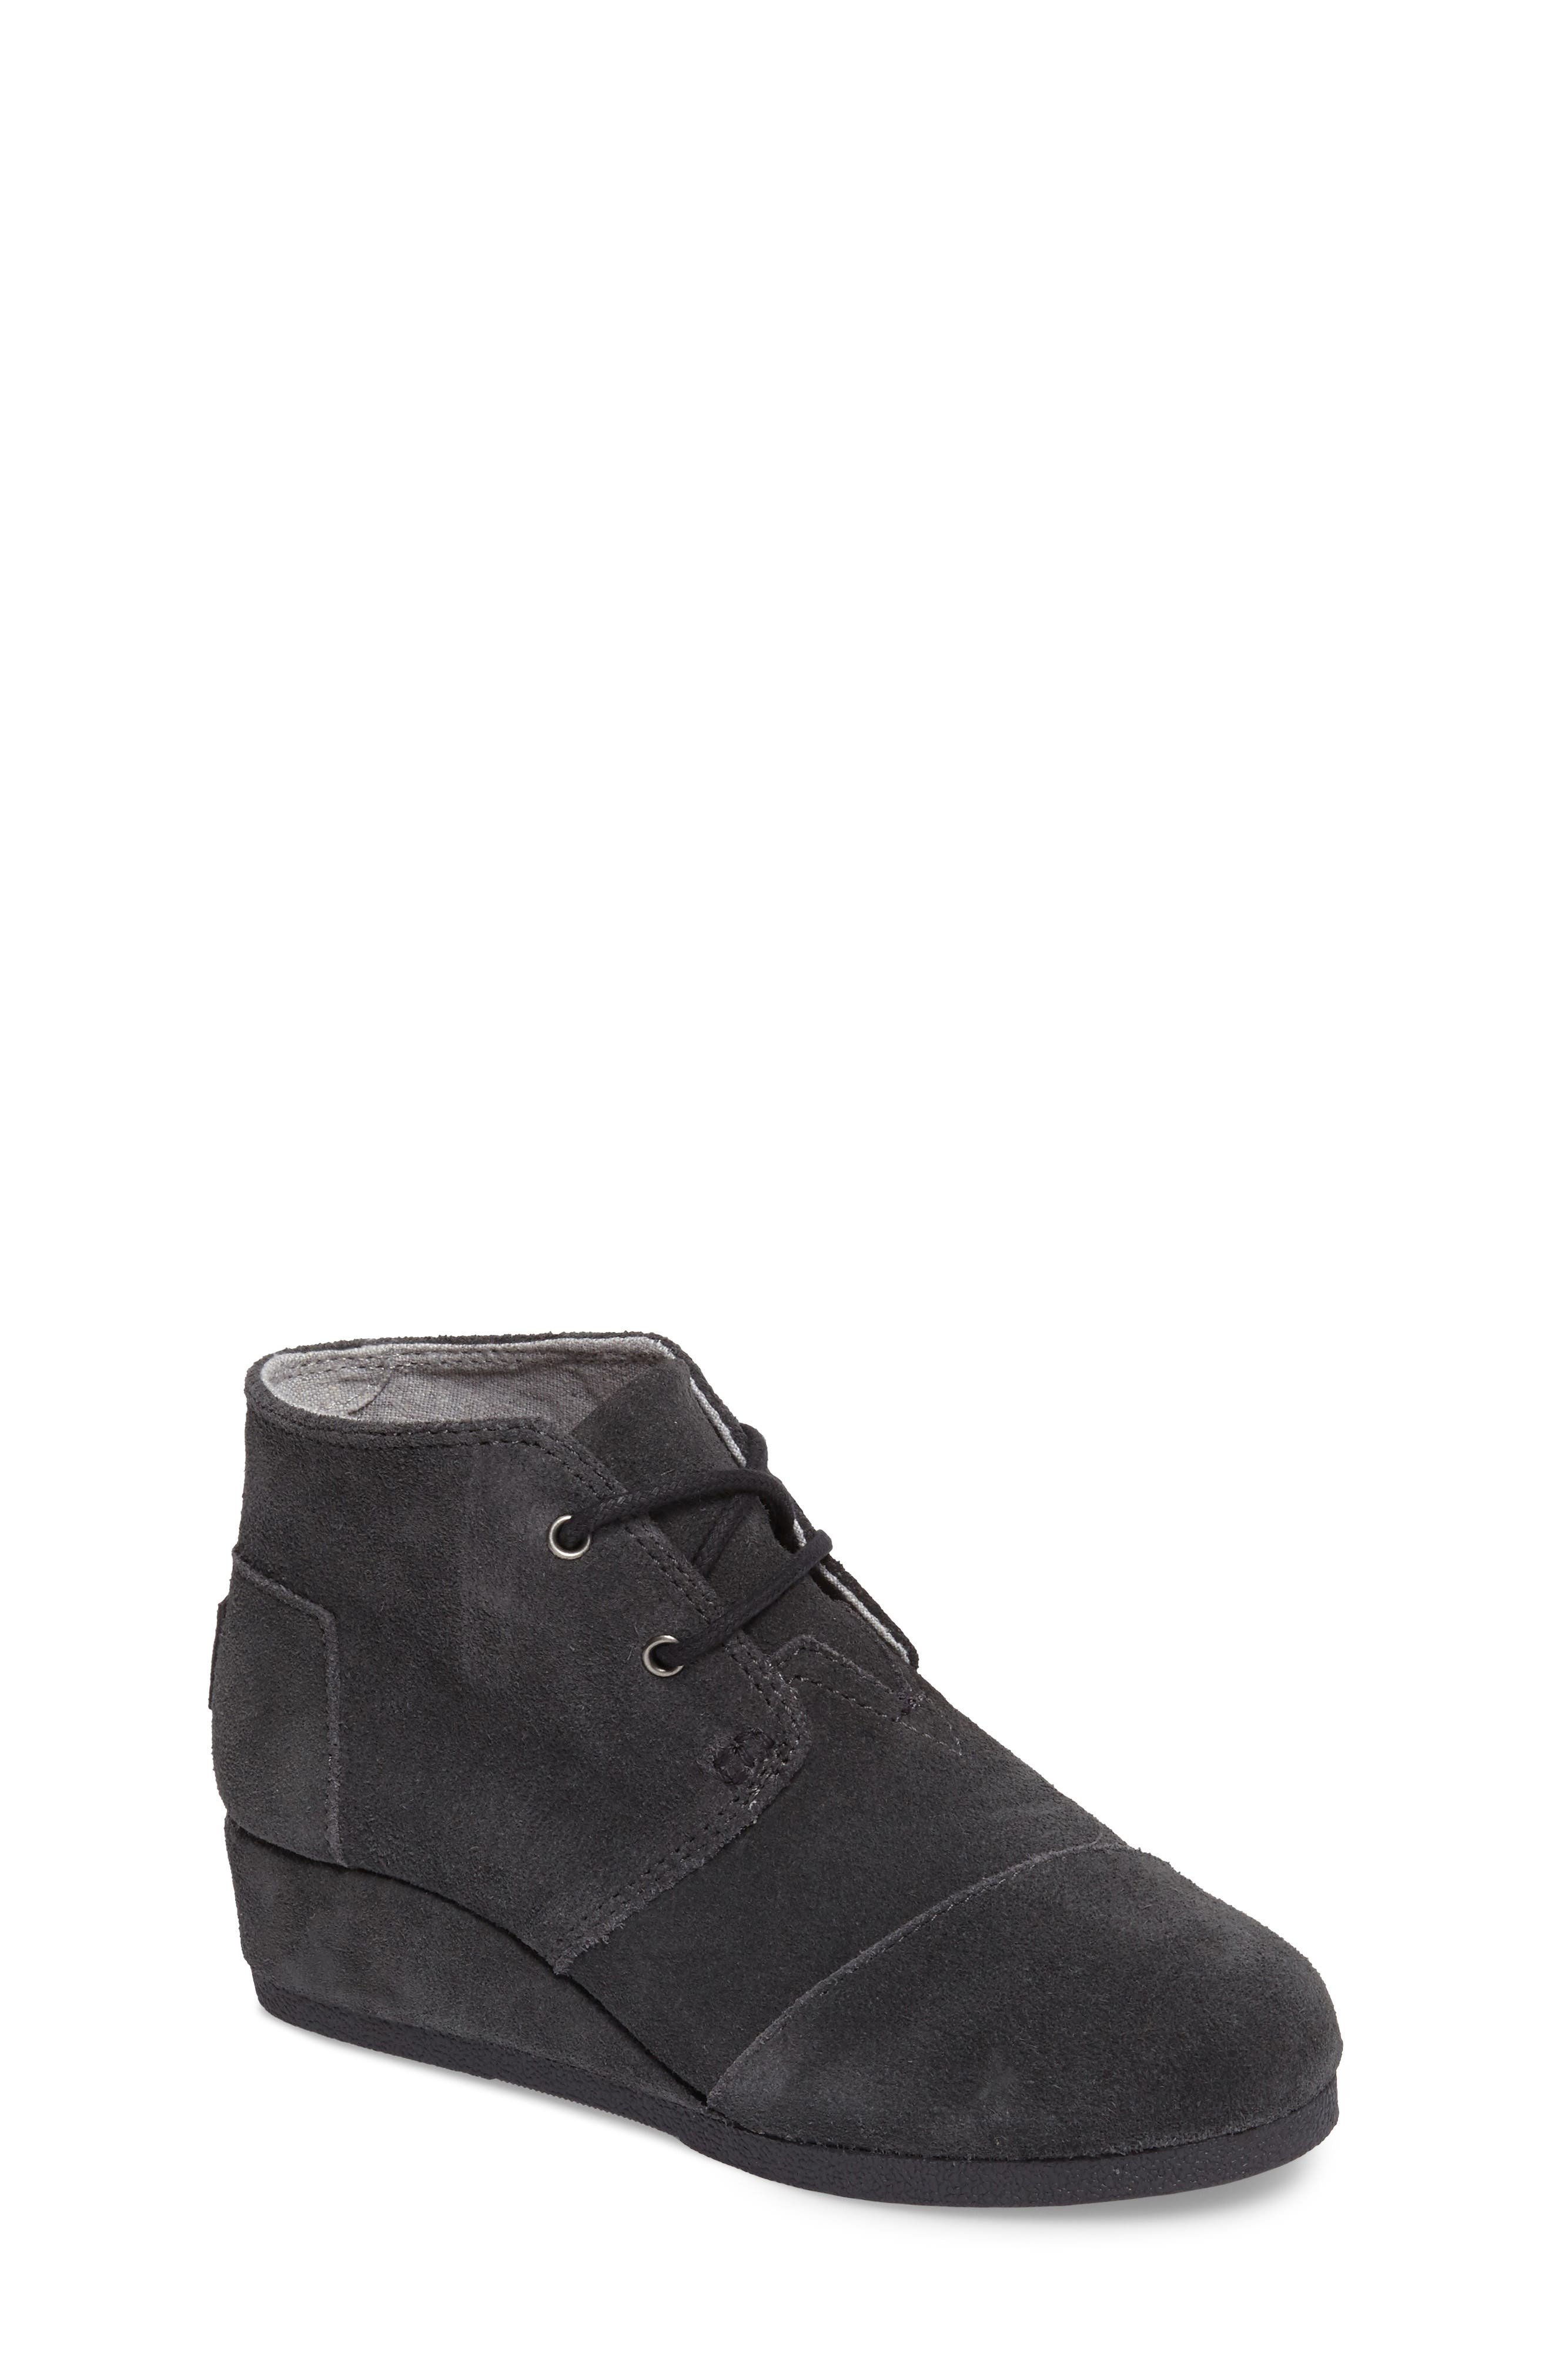 'Desert - Youth' Wedge Bootie,                         Main,                         color, 021